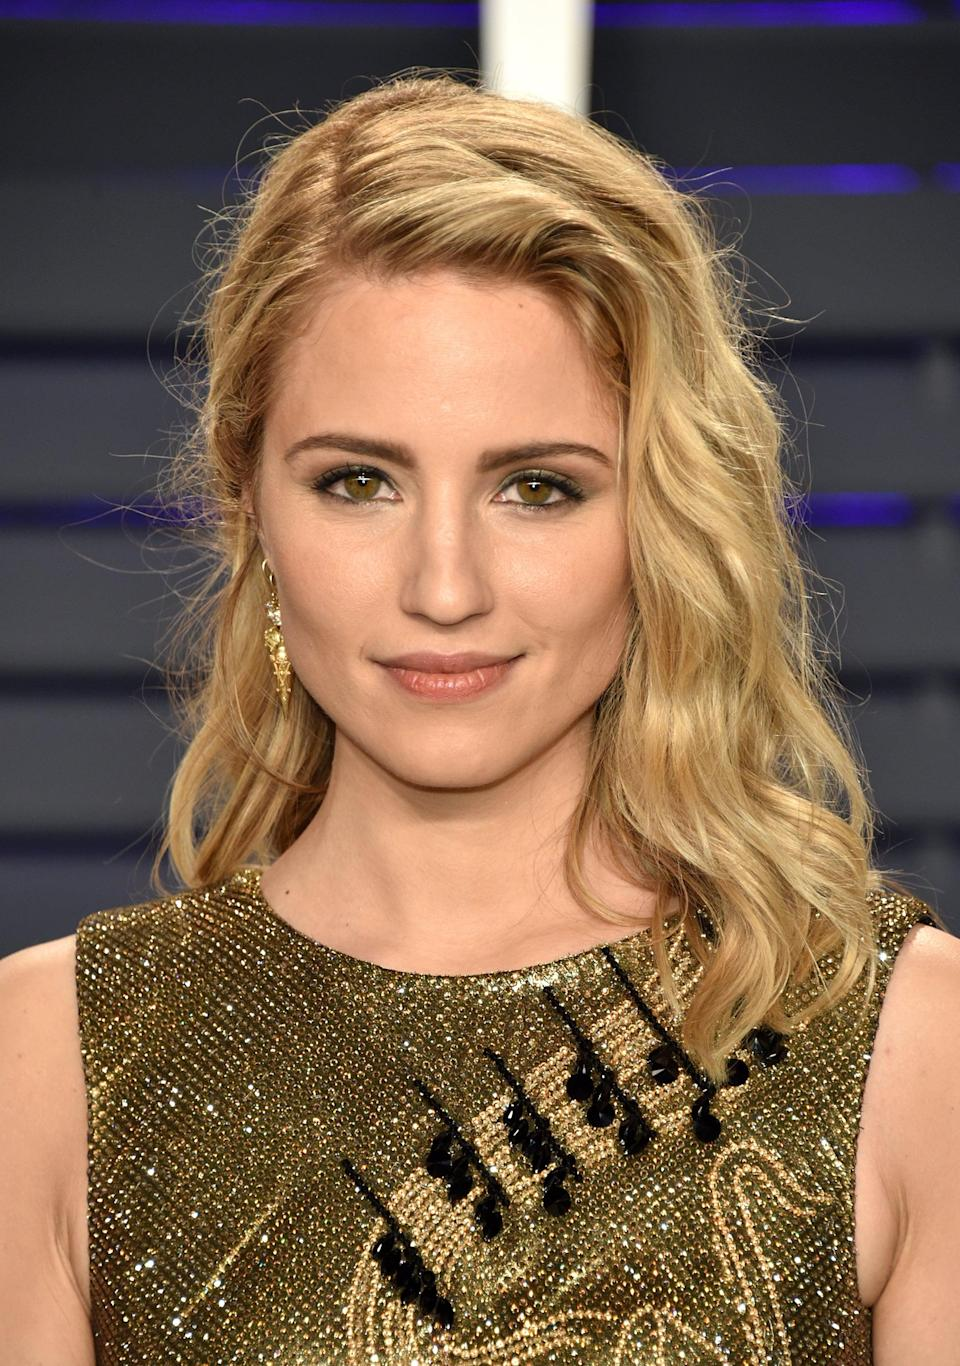 """<p>Though it's unclear how long they dated (or if they even <em>did</em> date), Luke was first romantically linked to <strong>Glee </strong>star <a class=""""link rapid-noclick-resp"""" href=""""https://www.popsugar.com/Dianna-Agron"""" rel=""""nofollow noopener"""" target=""""_blank"""" data-ylk=""""slk:Dianna Agron"""">Dianna Agron</a> back in February 2015 when <a href=""""http://www.facebook.com/media/set/?set=a.966080966749010&type=3&comment_id=966159683407805"""" class=""""link rapid-noclick-resp"""" rel=""""nofollow noopener"""" target=""""_blank"""" data-ylk=""""slk:they were photographed holding hands"""">they were photographed holding hands</a> in Los Angeles. However, little else was heard about the maybe-couple after that initial sighting, and dating rumors eventually fizzled out. </p>"""